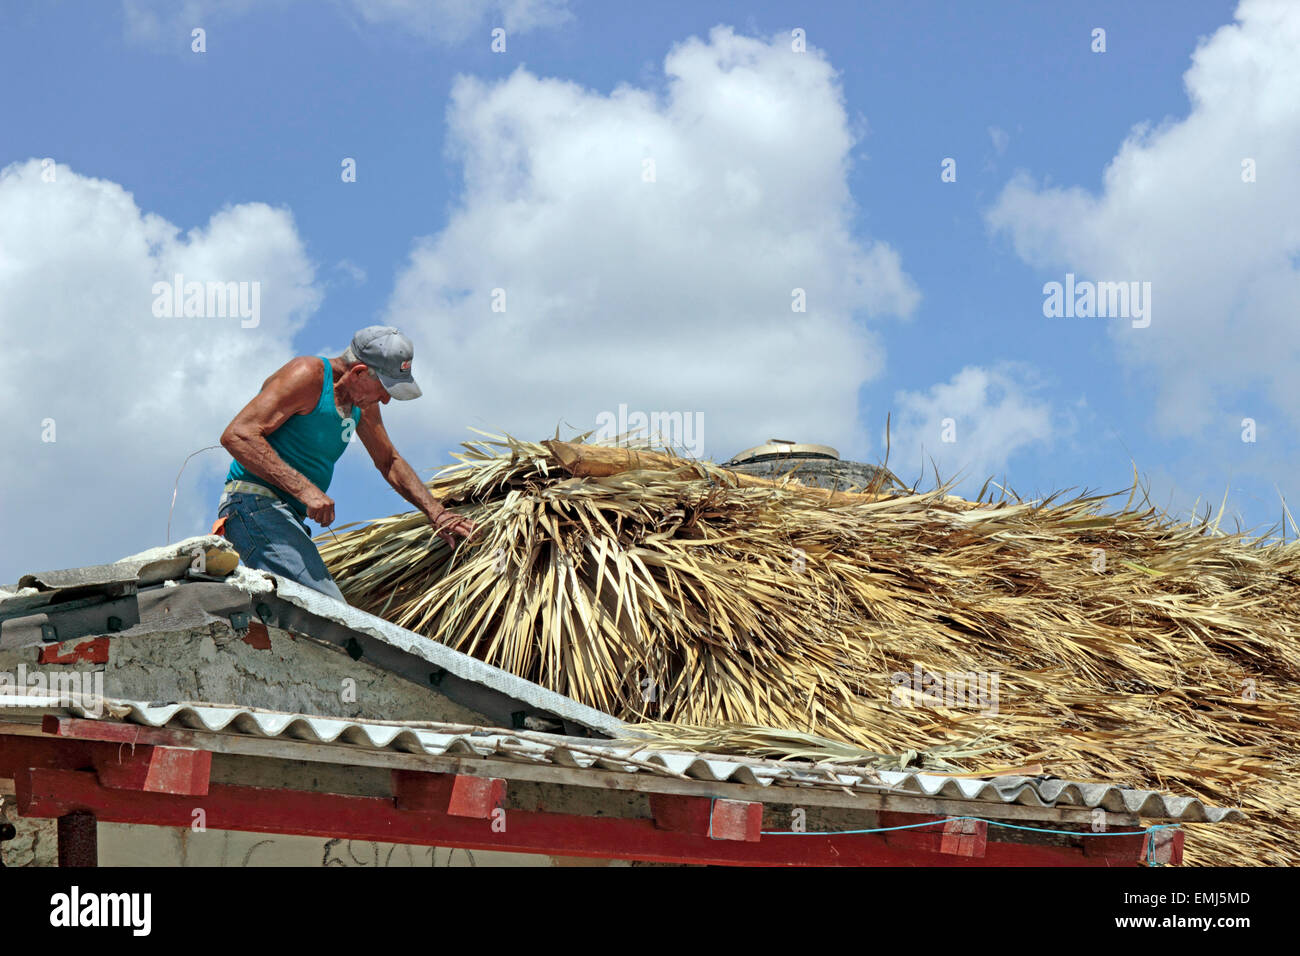 Elderly man works on a straw roof of a Beach house on the beach at Zapata Peninsula Cuba - Stock Image